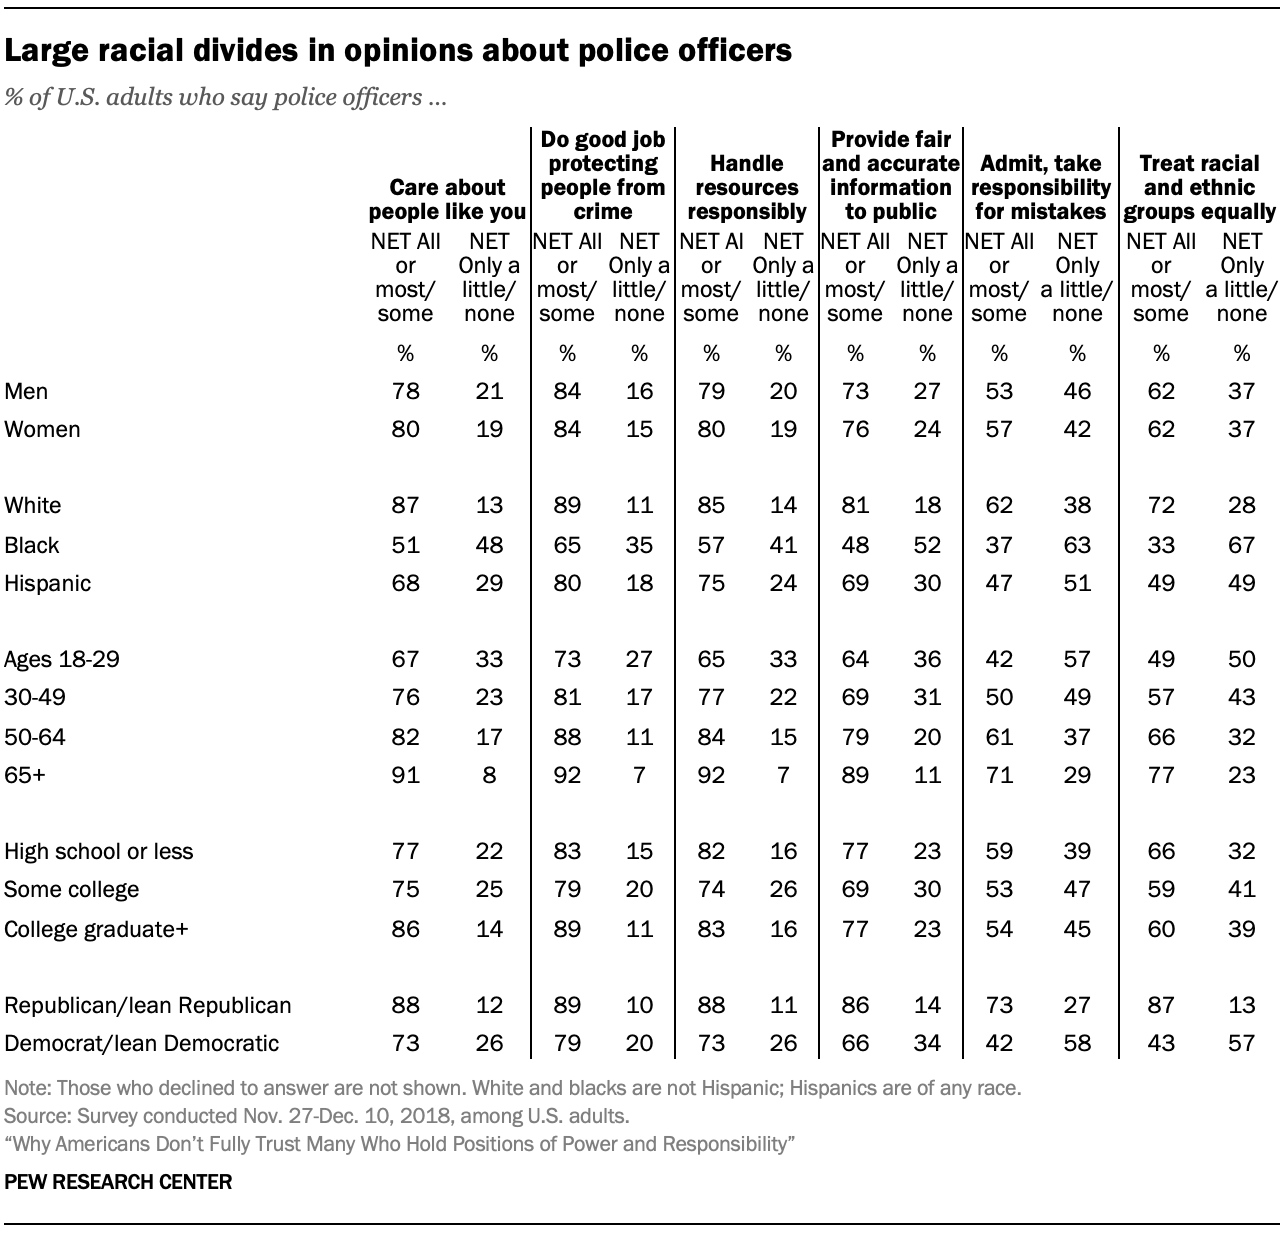 Large racial divides in opinions about police officers